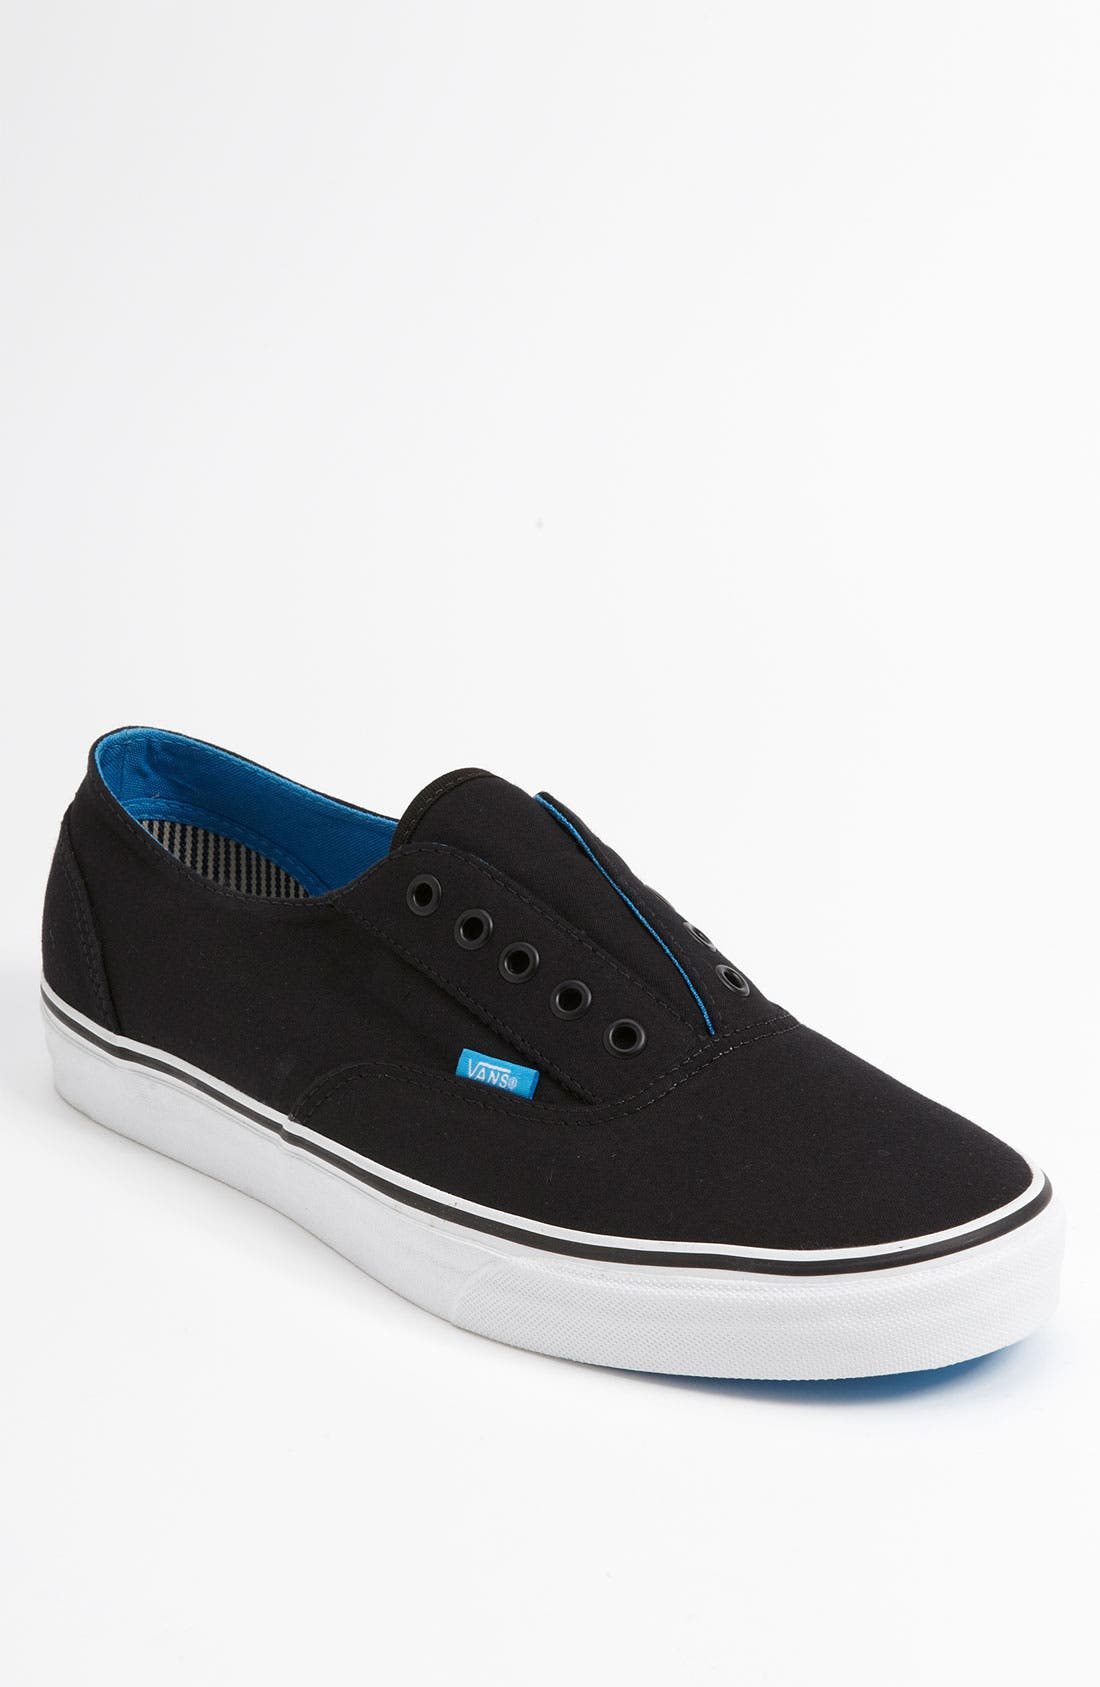 Alternate Image 1 Selected - Vans 'Era Laceless CA' Sneaker (Men)